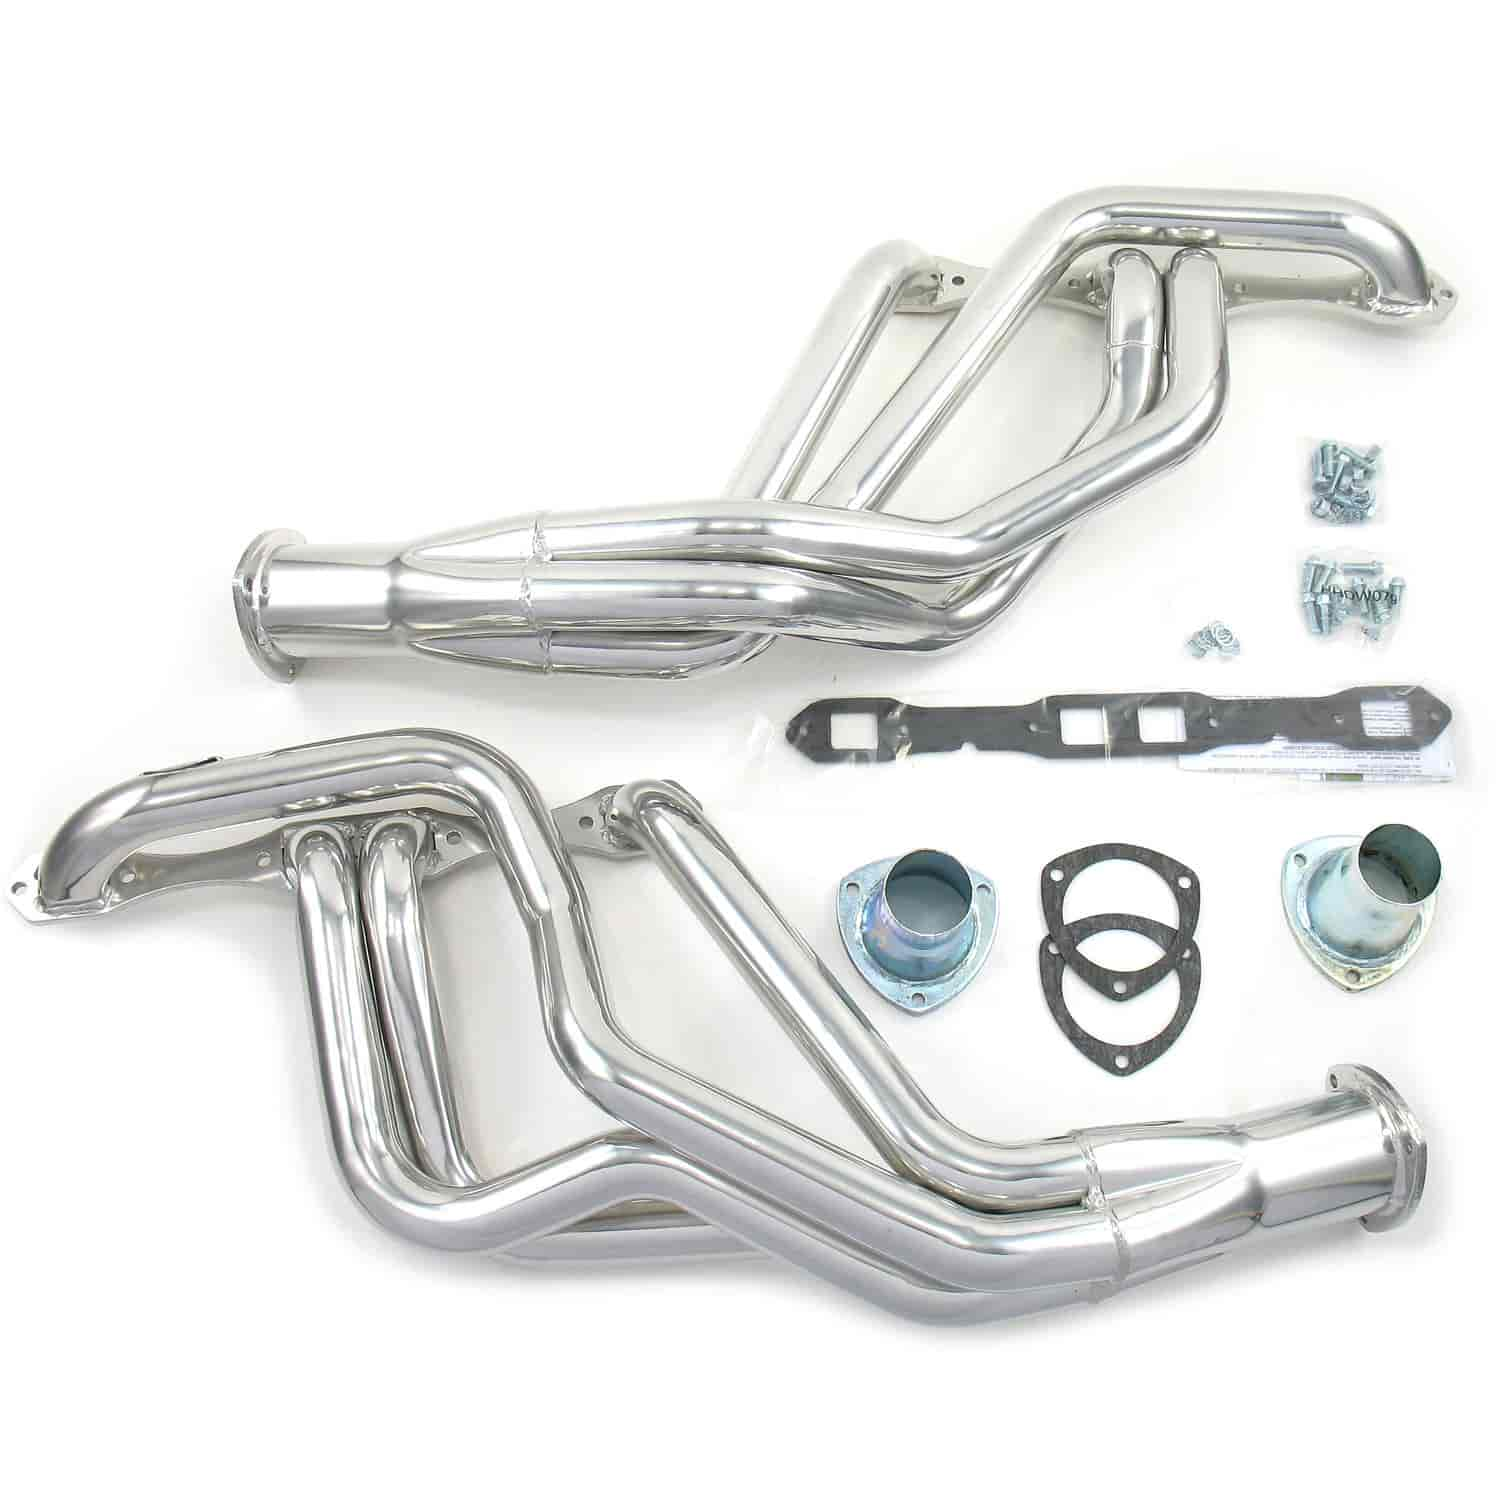 776 d452 doug's headers d452 metallic ceramic coated headers 1962 1974 Electric Exhaust Cutouts Kits at n-0.co